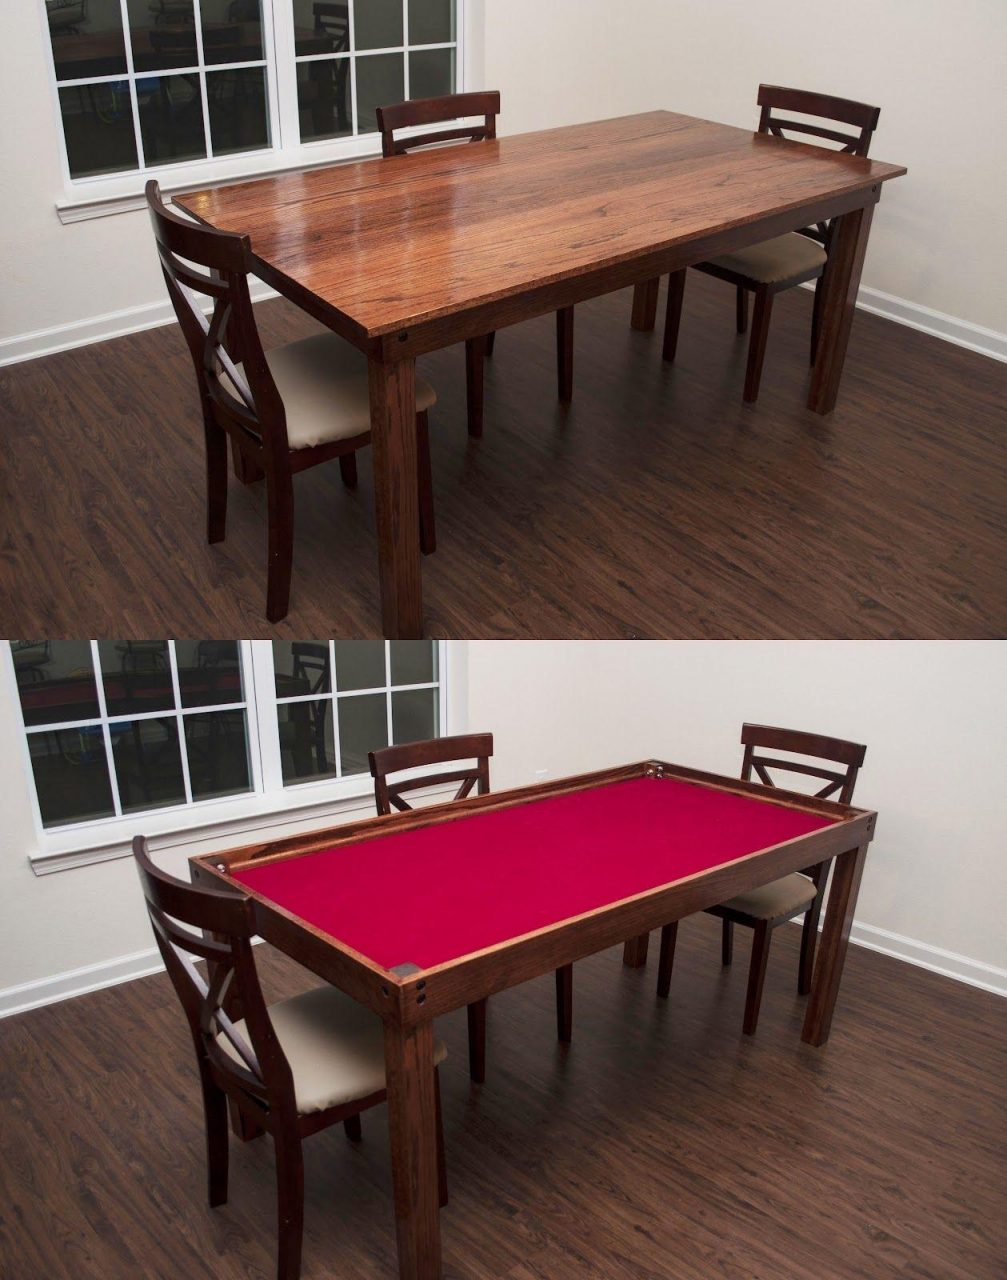 Dining Room Game Table Luxury The Fackrell Family Gaming Table